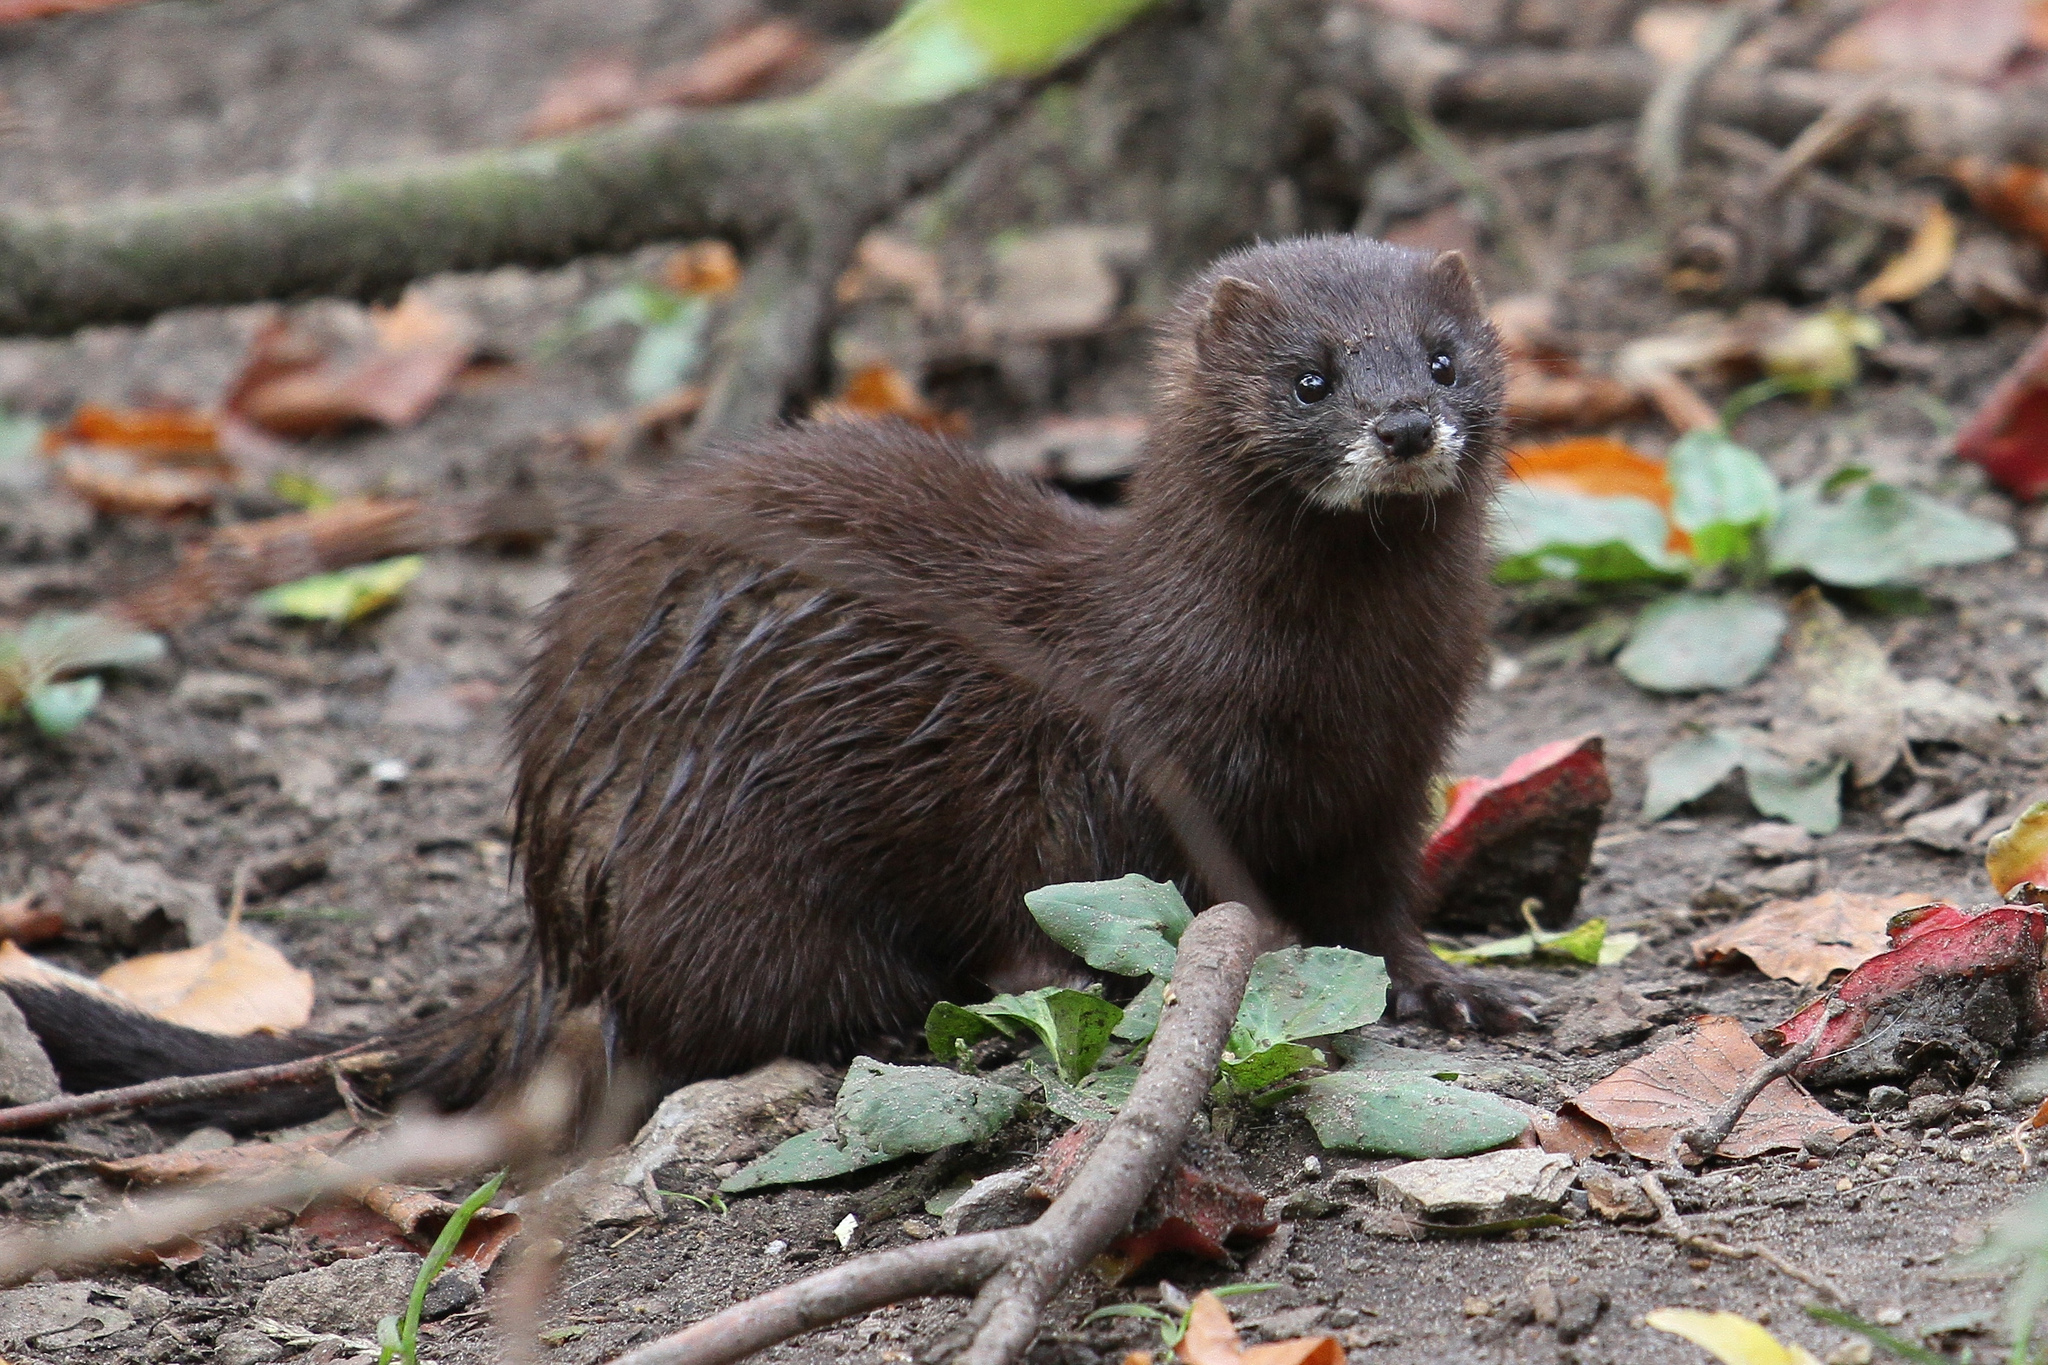 In the EU, 592 species are critically endangered. This is the last stage before a species goes extinct in the wild. Among the critically endangered is the European mink. Its population decreased steadily in the 20th century because of widespread hunting. Threats such as the invasive American mink and a decrease in their food source, crayfish, means their number is expected to decline further. Image credit - European mink by zoofanatic CC 2.0 BY